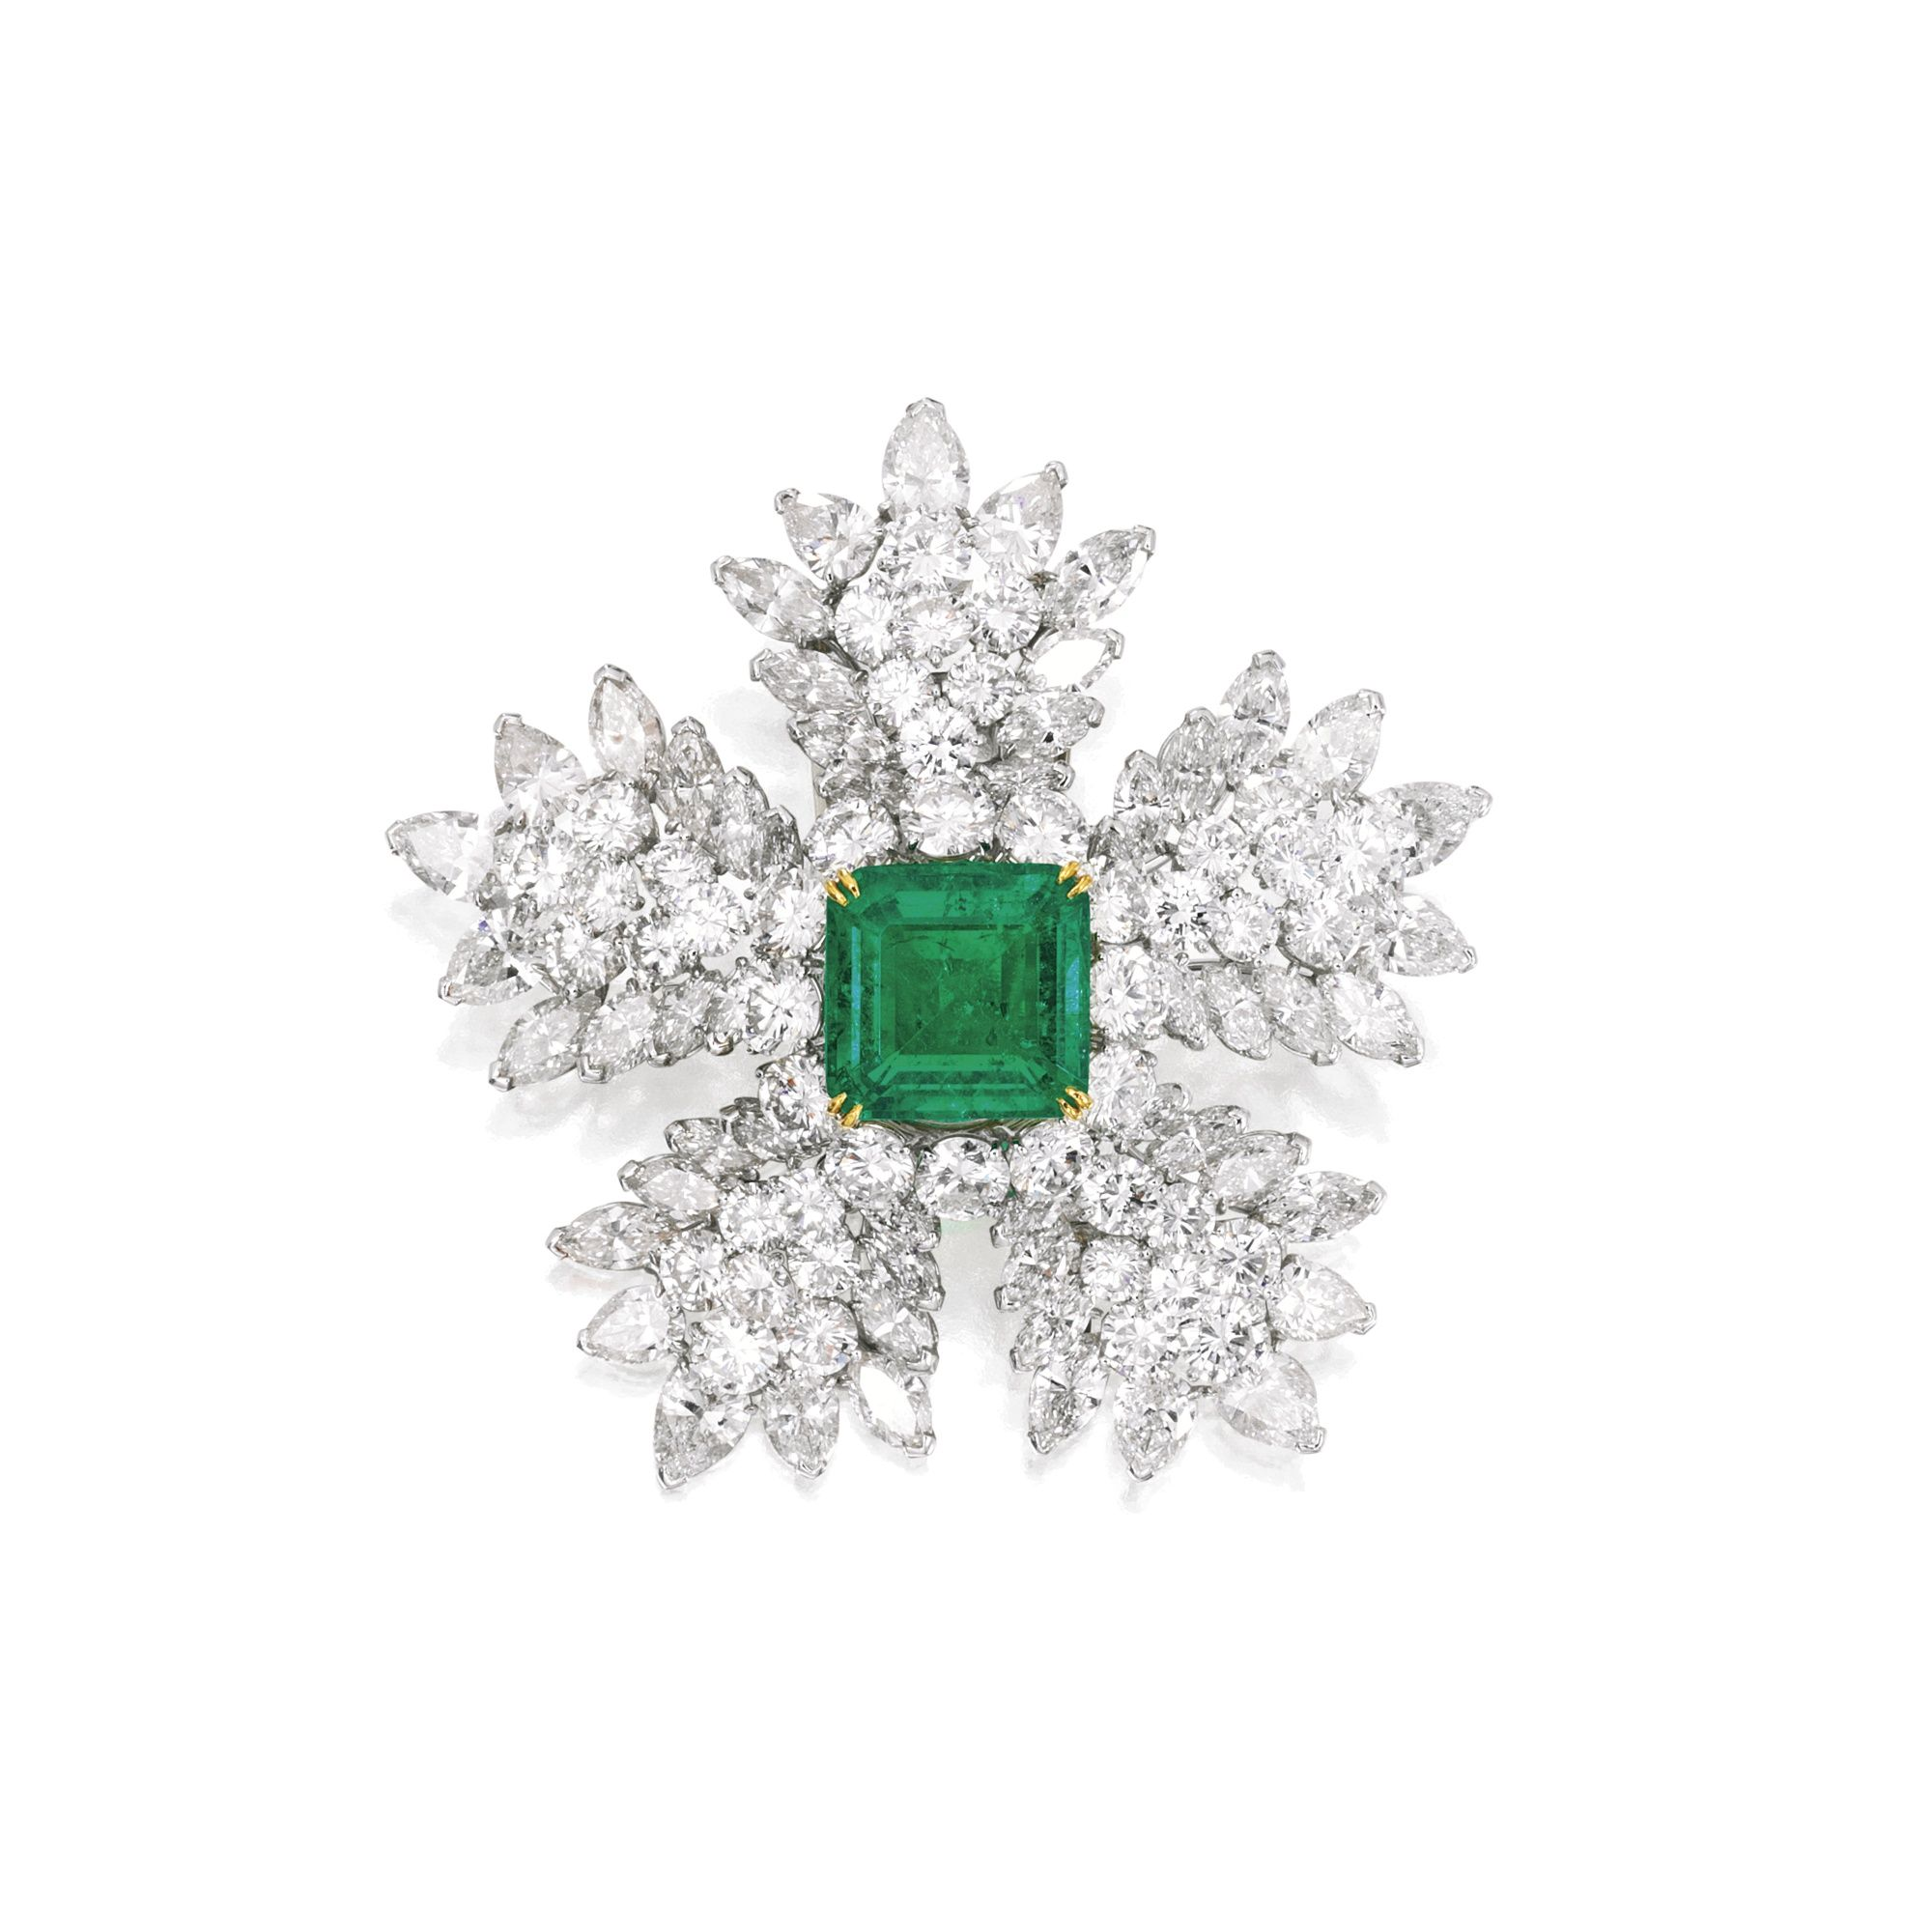 A PLATINUM, EMERALD AND DIAMOND BROOCH, VAN CLEEF & ARPELS, NEW YORK, CIRCA 1965 designed as a flowerhead set in the center with a square emerald-cut emerald weighing 9.68 carats framed by round diamonds weighing approximately 13.45 carats, further set with 15 pear and 40 marquise-shaped diamonds weighing approximately 14.20 carats, signed VCA NY, numbered 36609; with signed box.